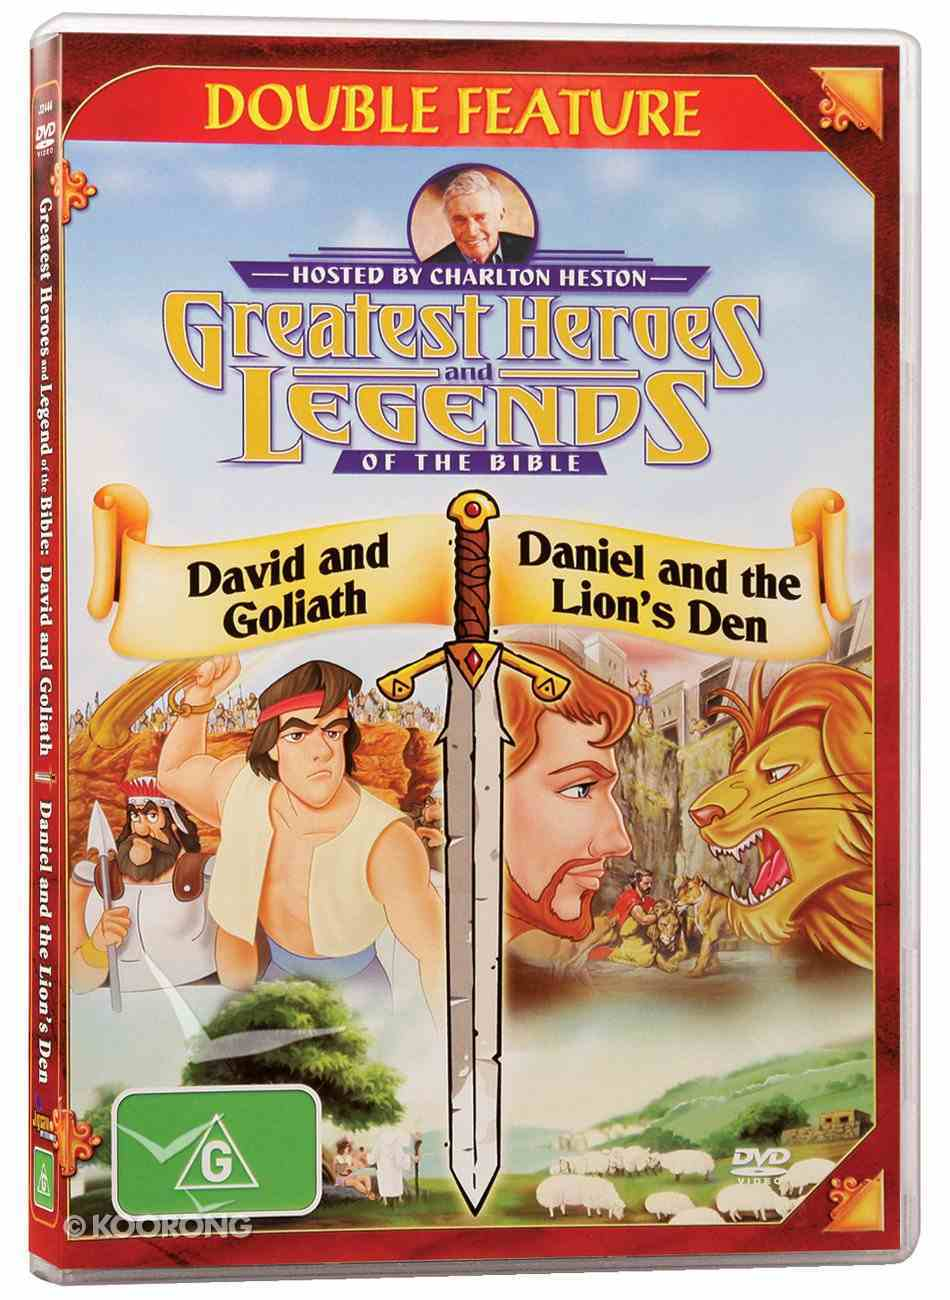 David and Goliath/Daniel and the Lion's Den (Greatest Heroes & Legends Of The Bible Series) DVD